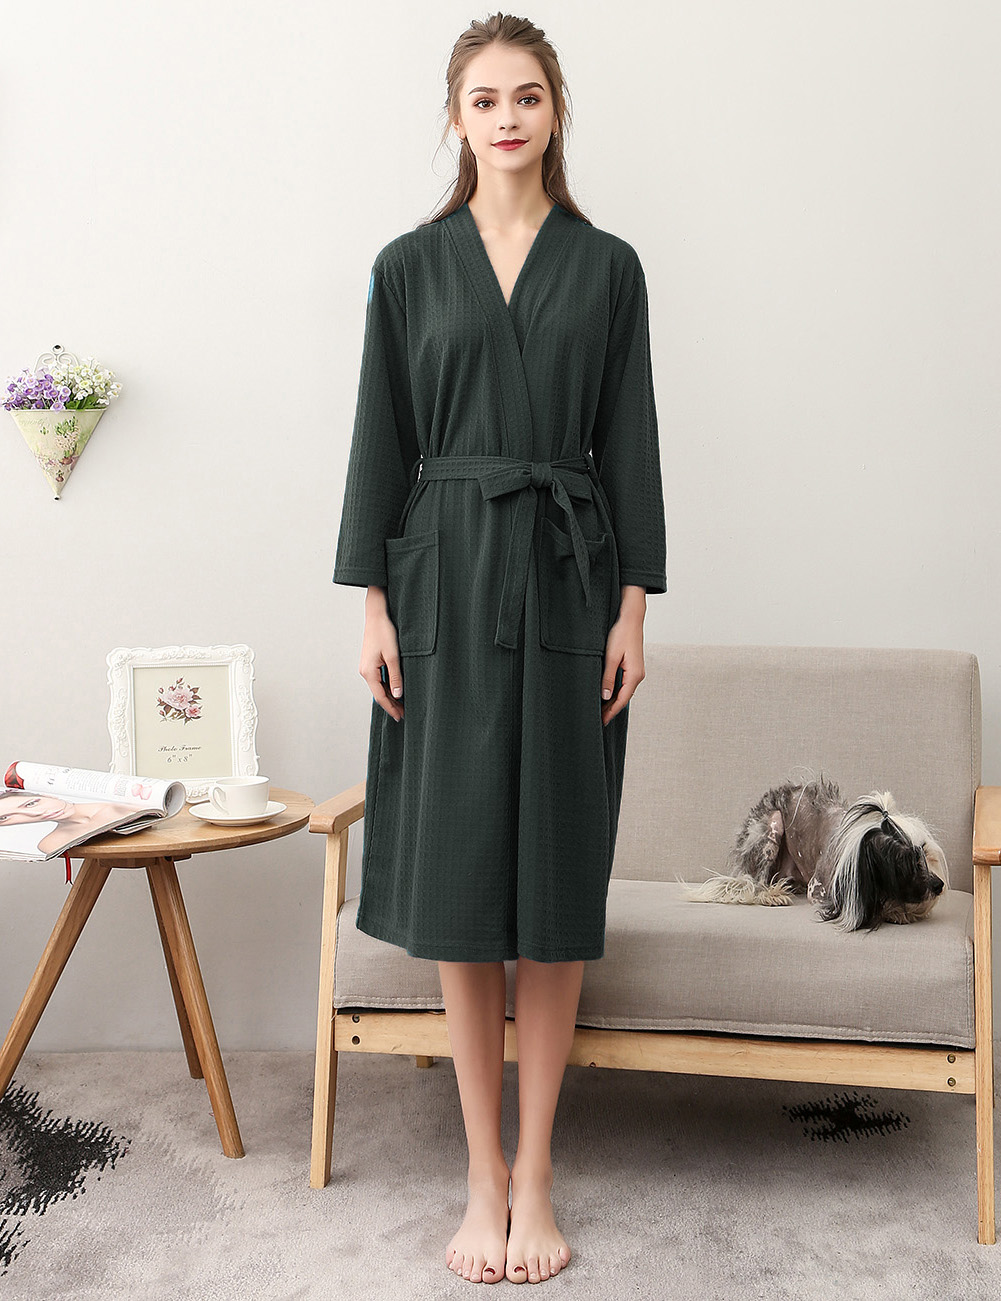 //cdn.affectcloud.com/feelingirldress/upload/imgs/2019-06-29/SY190098-GN4/SY190098-GN4.jpg